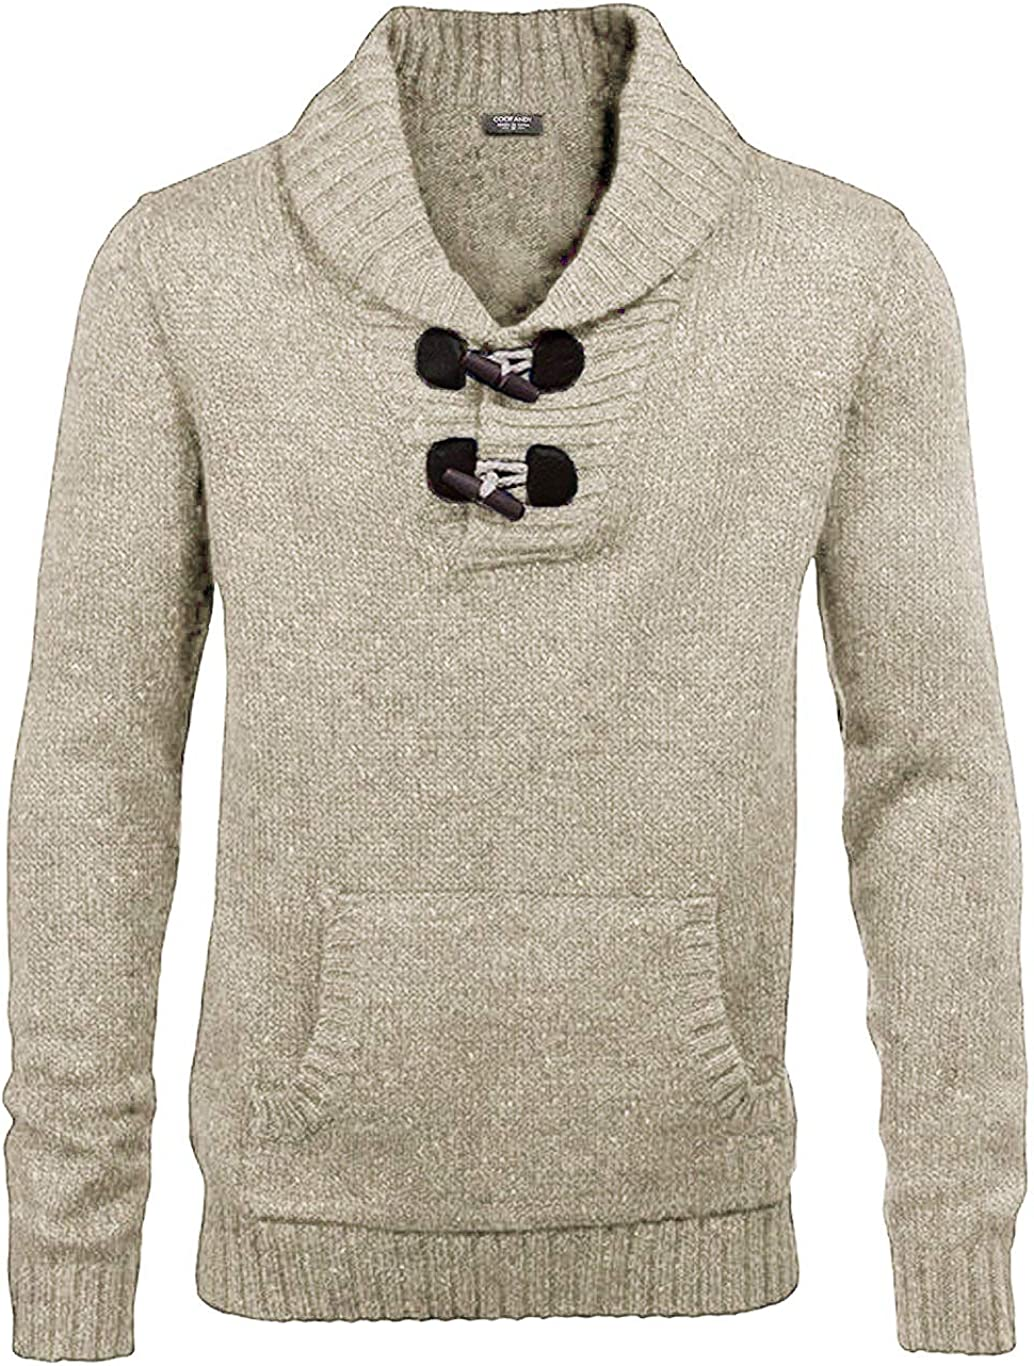 COOFANDY Direct sale of manufacturer Men's Shawl Collar Great interest Pullover Relaxed Fit Casual Sweater